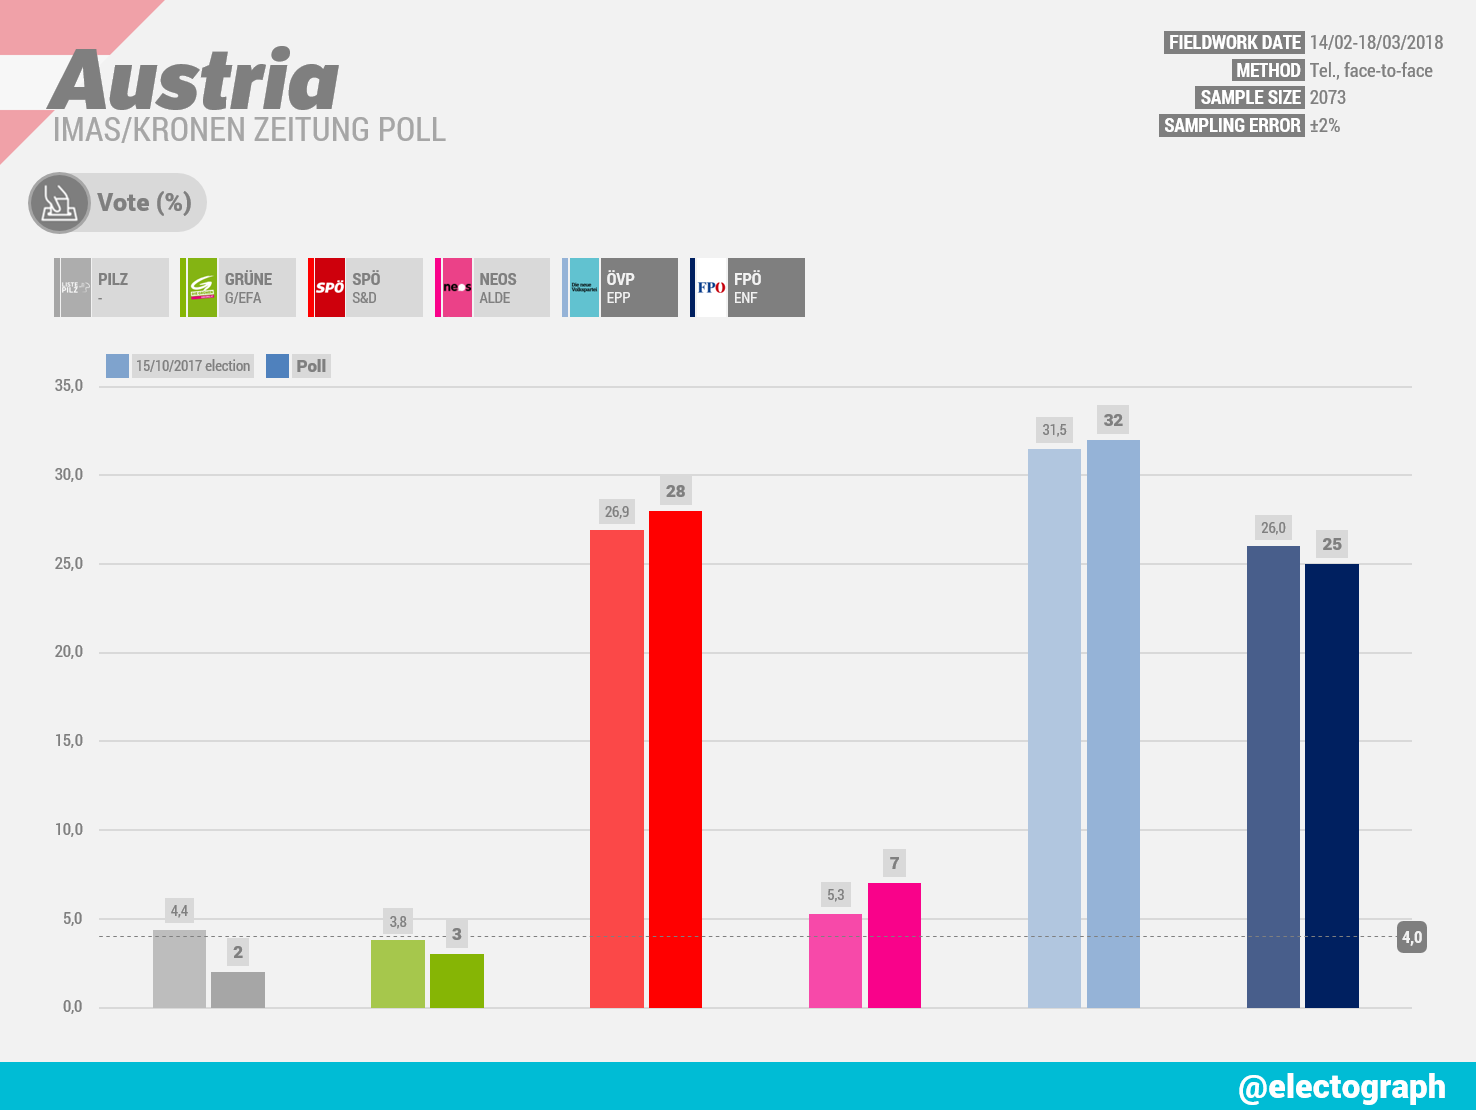 AUSTRIA IMAS poll chart for Kronen Zeitung, March 2018